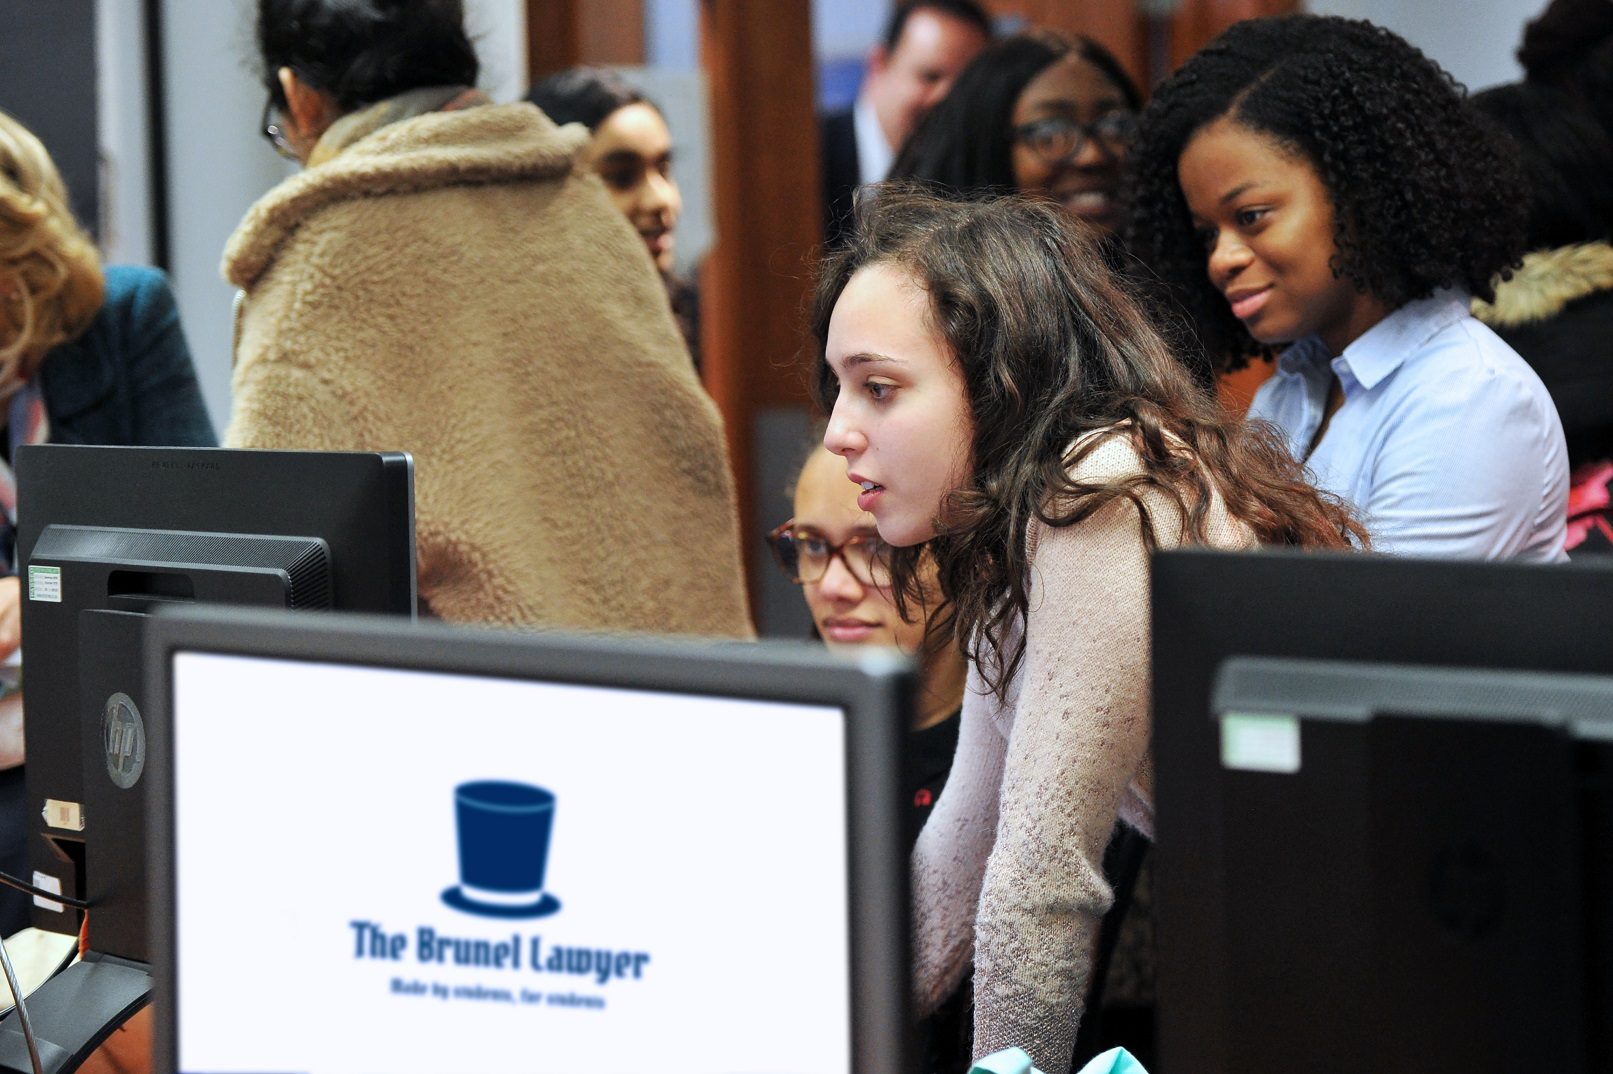 The Brunel Lawyer launch - 05, 35 per cent